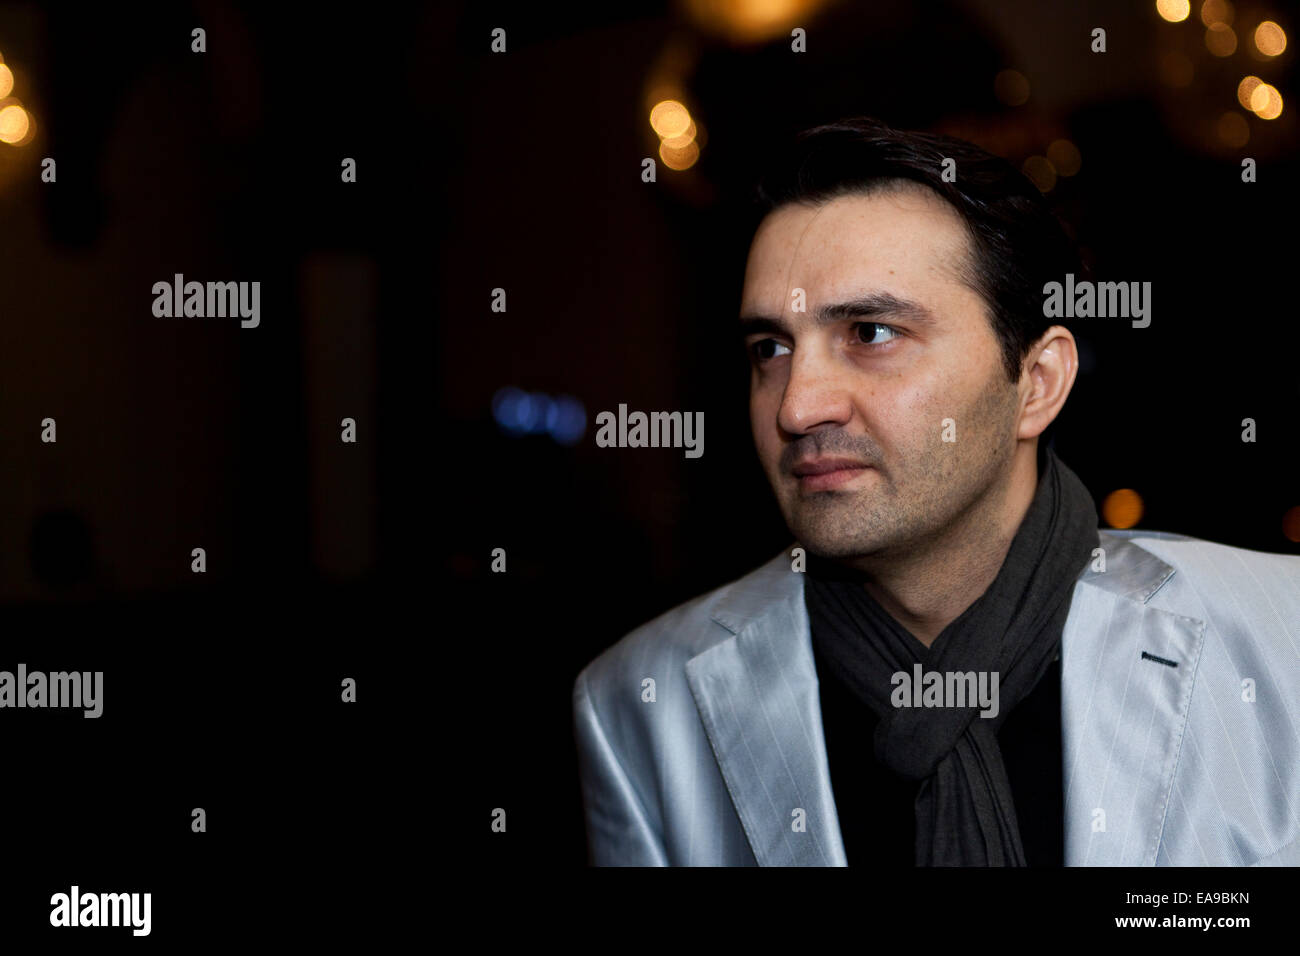 Copenhagen, Denmark, November 9th, 2014: Iranian exiled documentarist Ahmad Jalali Farahani pictured just before - Stock Image